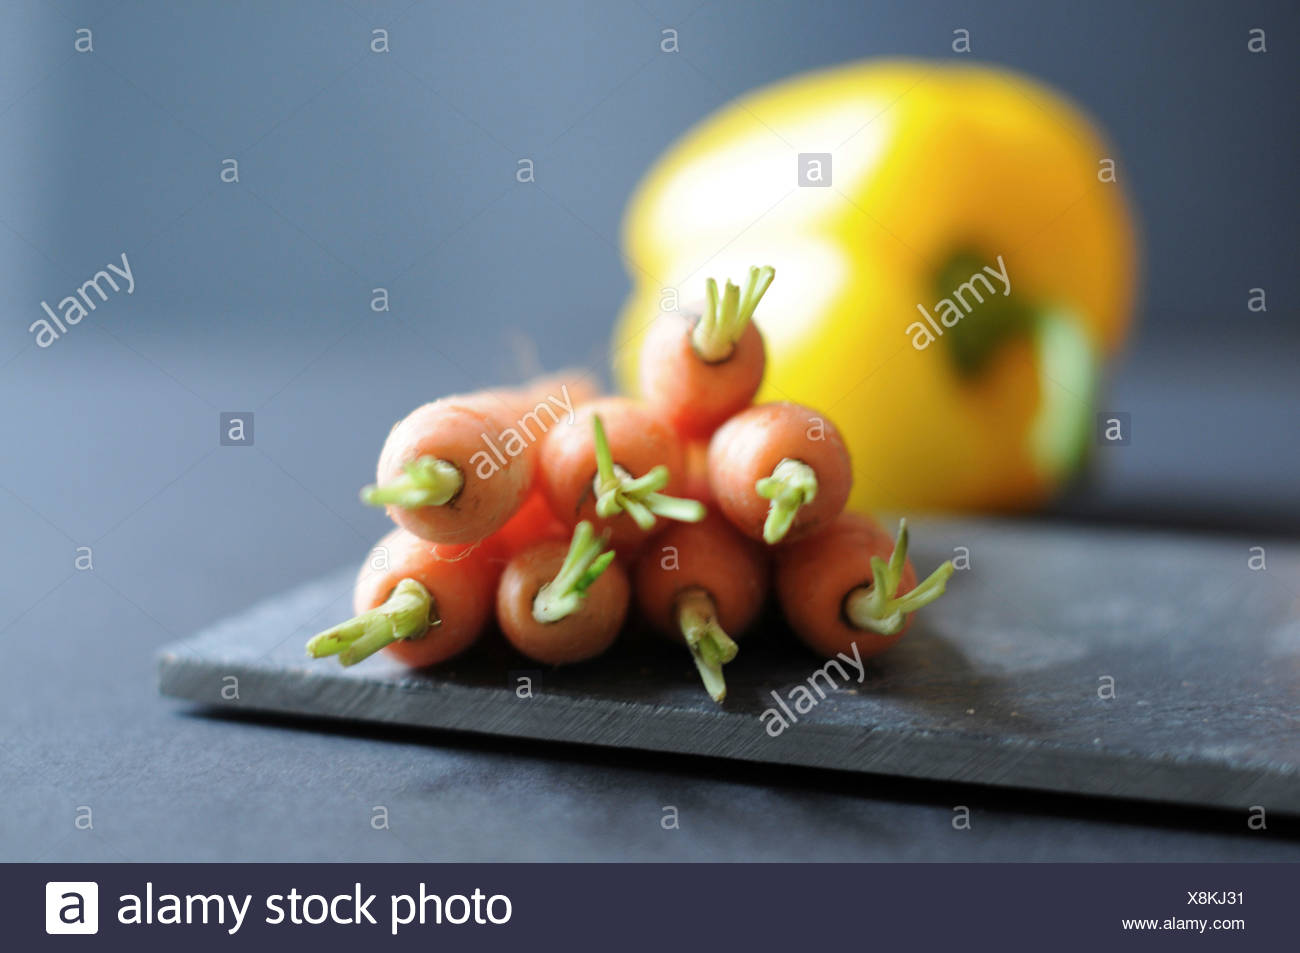 Carrots and one yellow sweet pepper bell - Stock Image